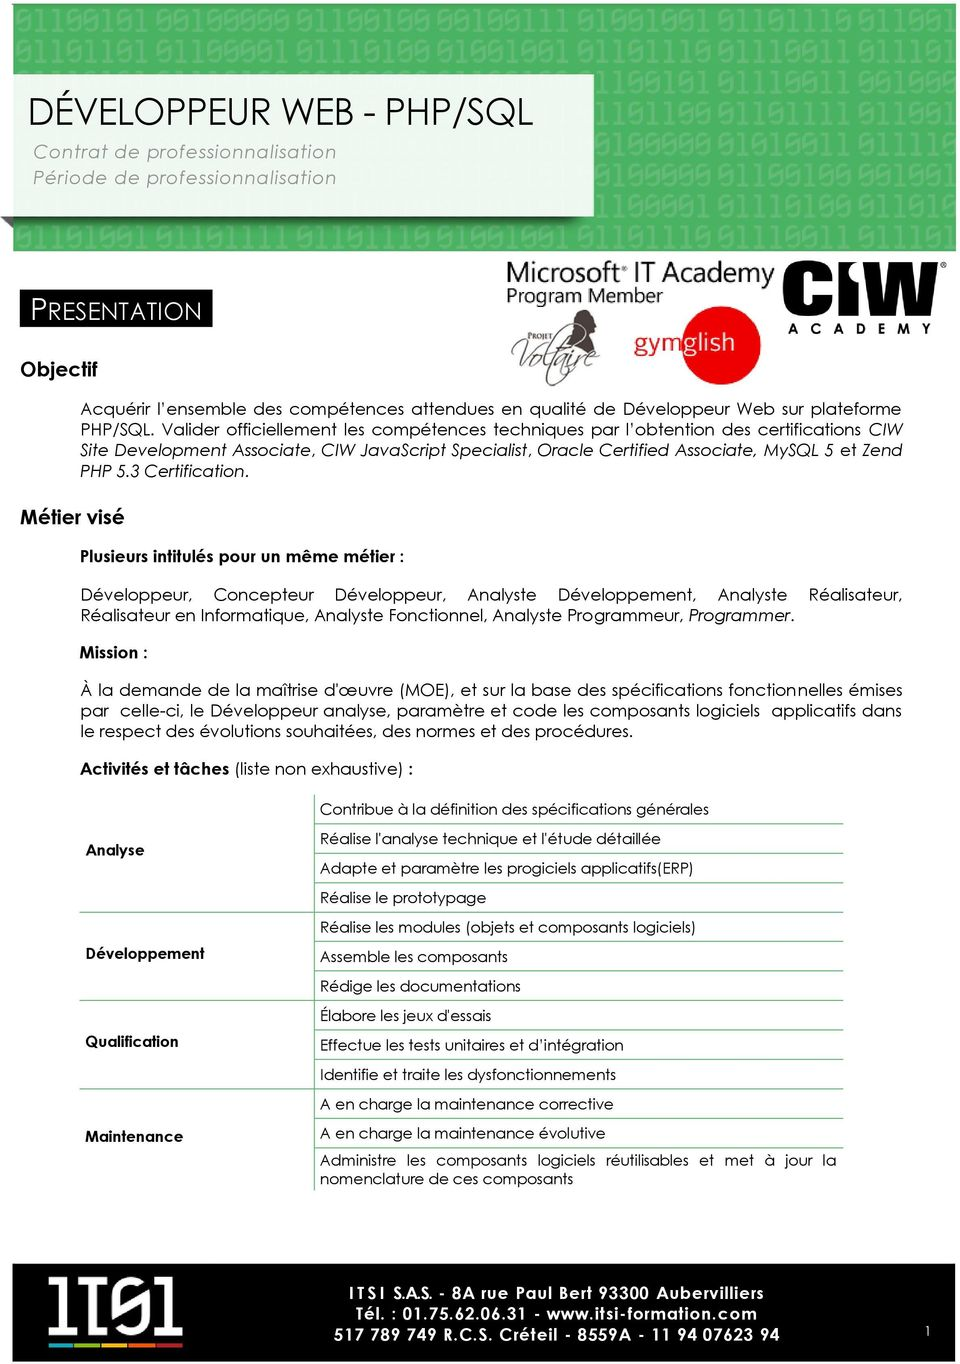 Valider officiellement les compétences techniques par l obtention des certifications CIW Site Development Associate, CIW JavaScript Specialist, Oracle Certified Associate, MySQL 5 et Zend PHP 5.